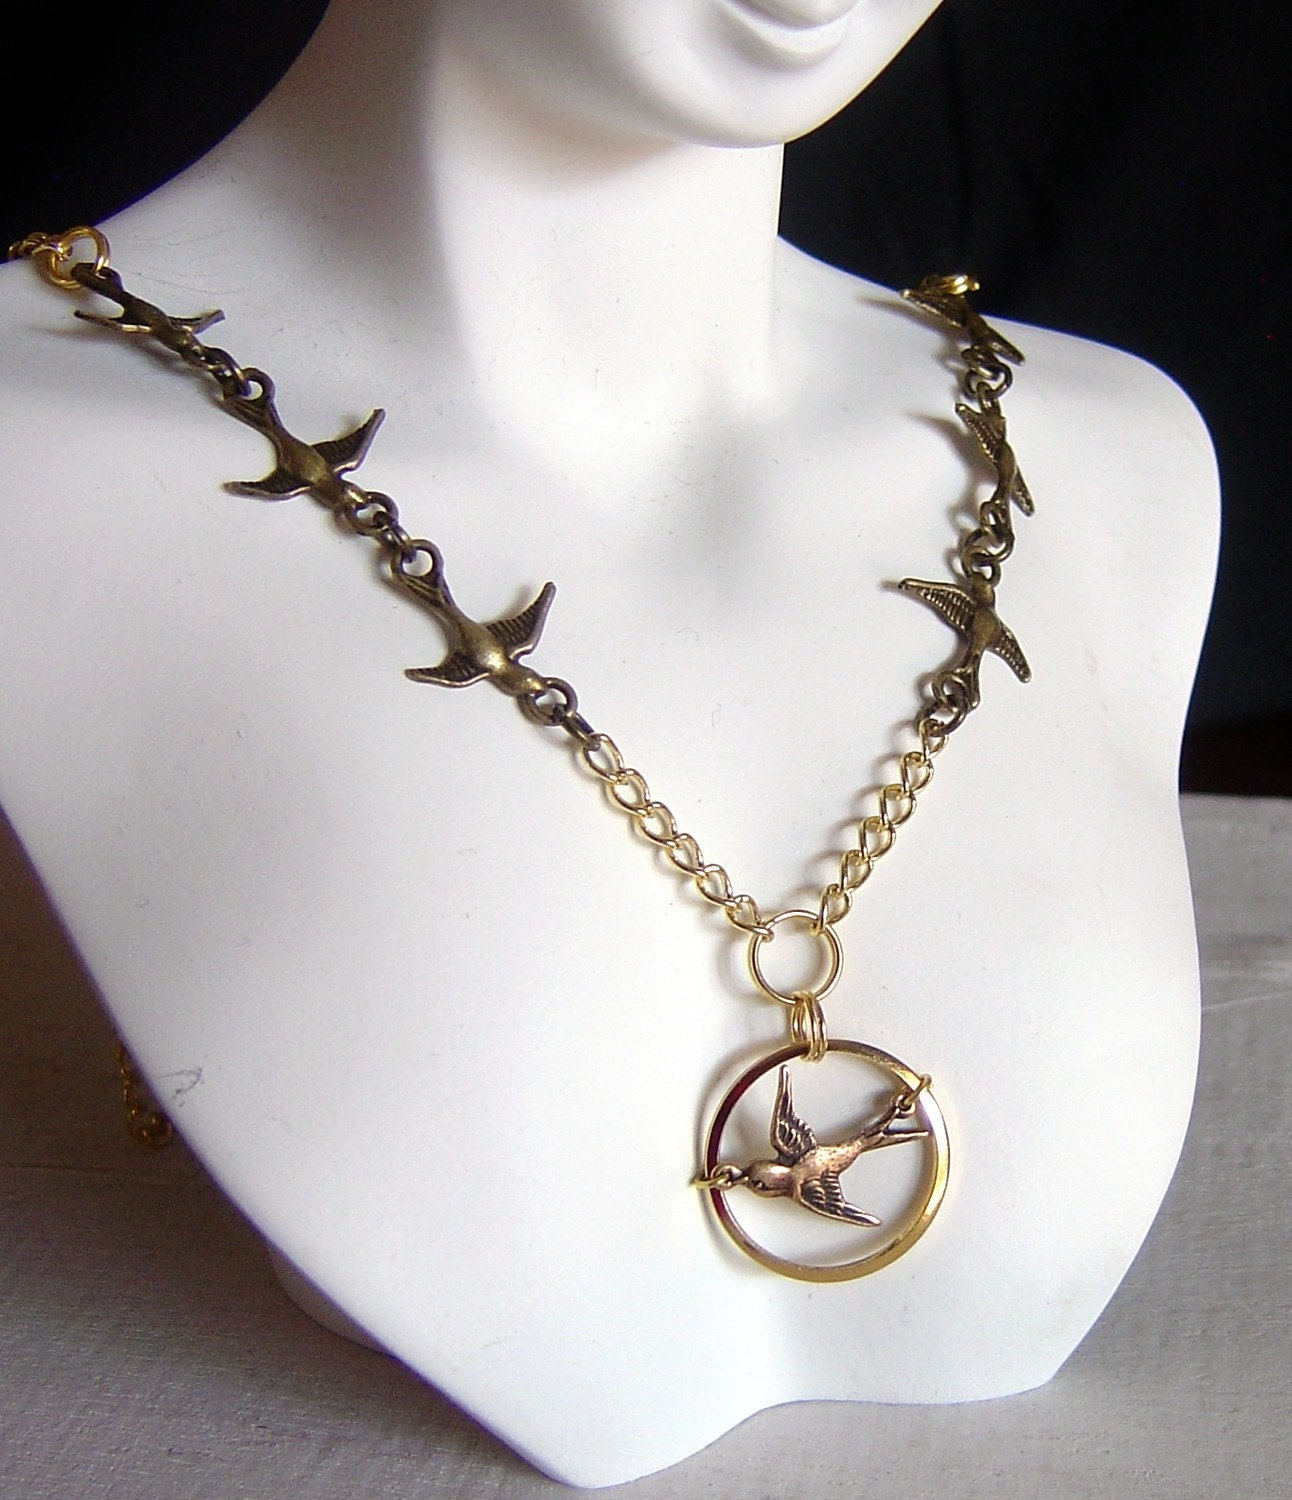 mockingjay pendant necklace by ang549 on etsy